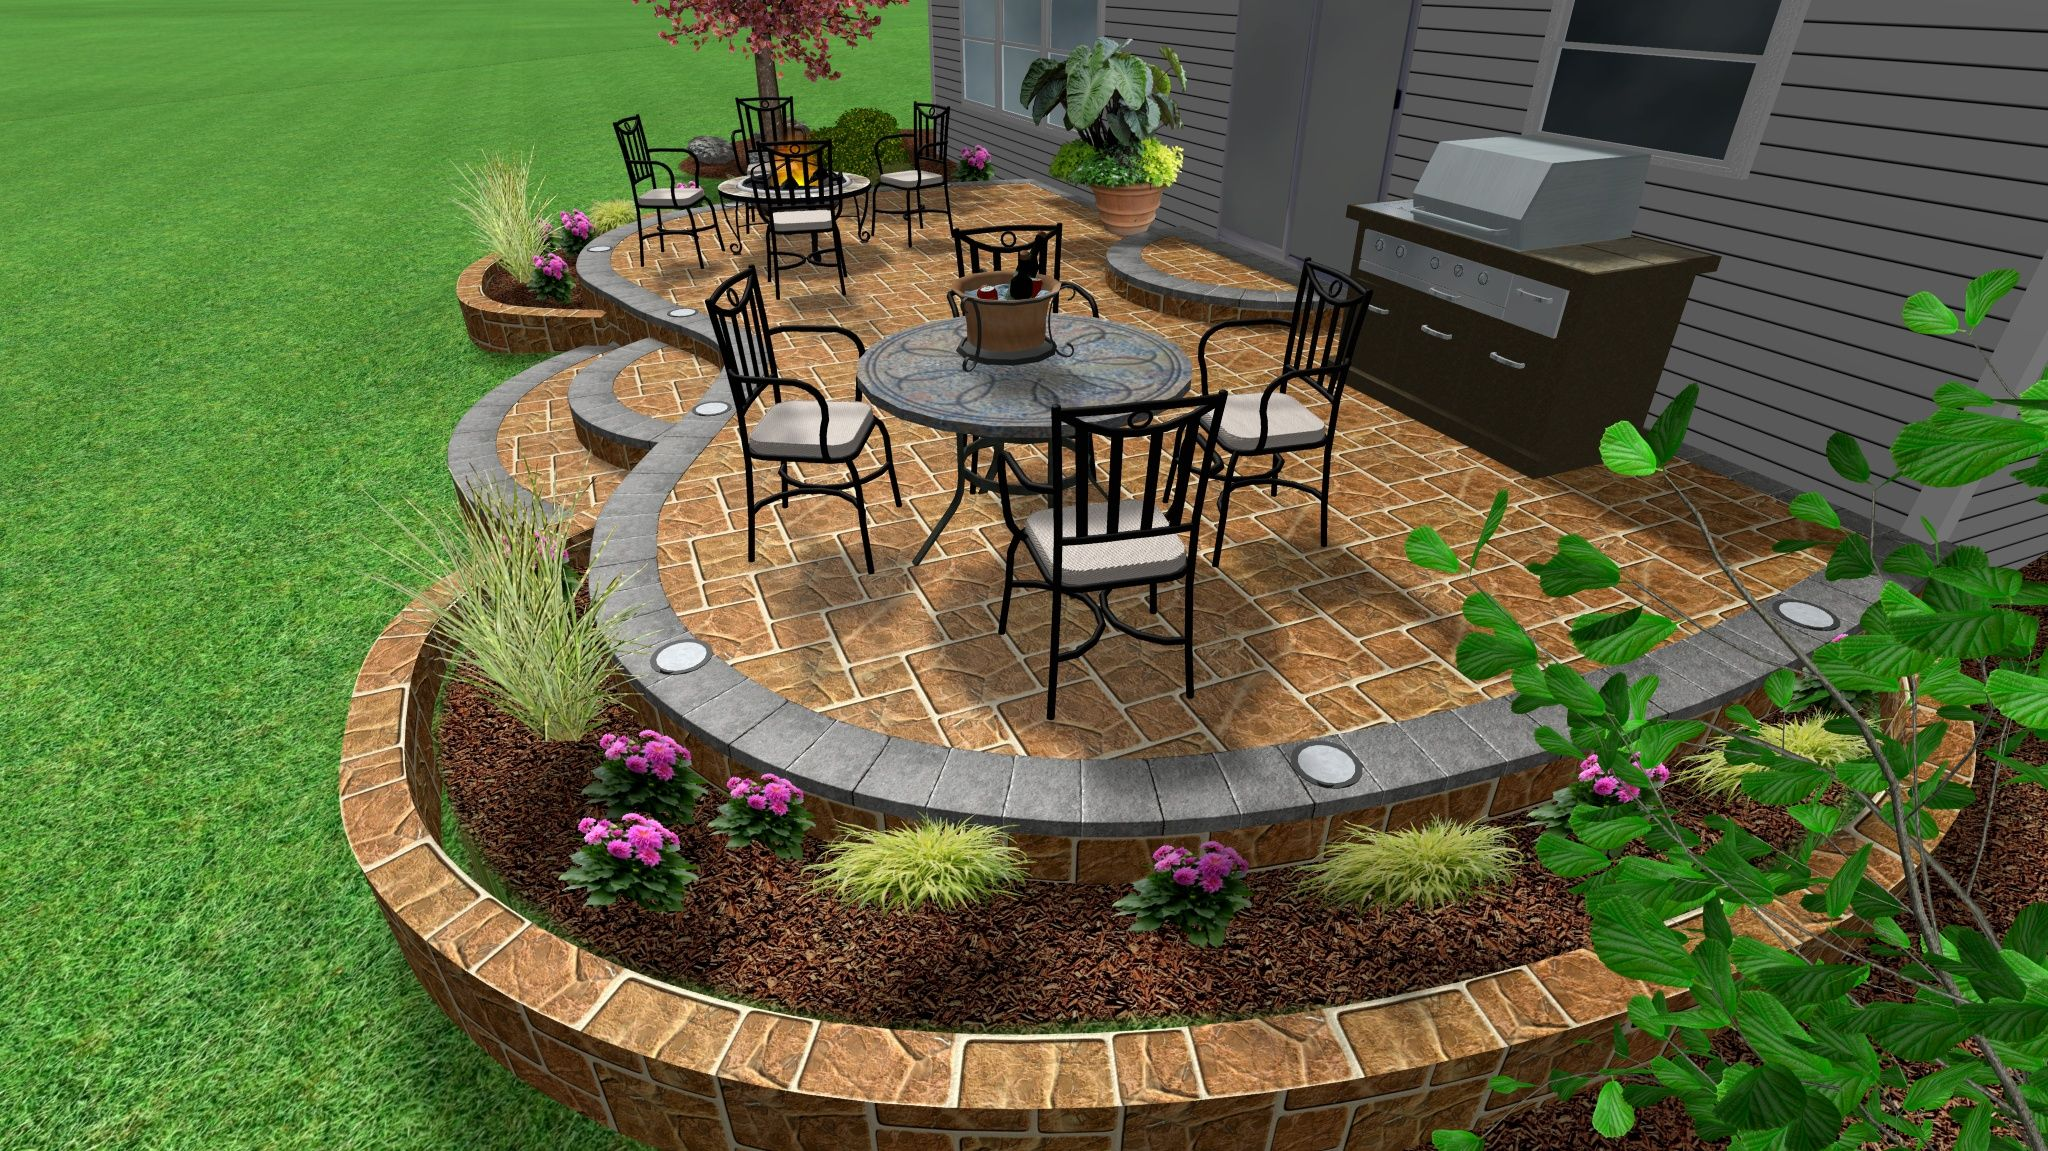 Raised Stamped Concrete Patio and Garden wall. | Outdoor ... on Raised Concrete Patio Ideas id=72298